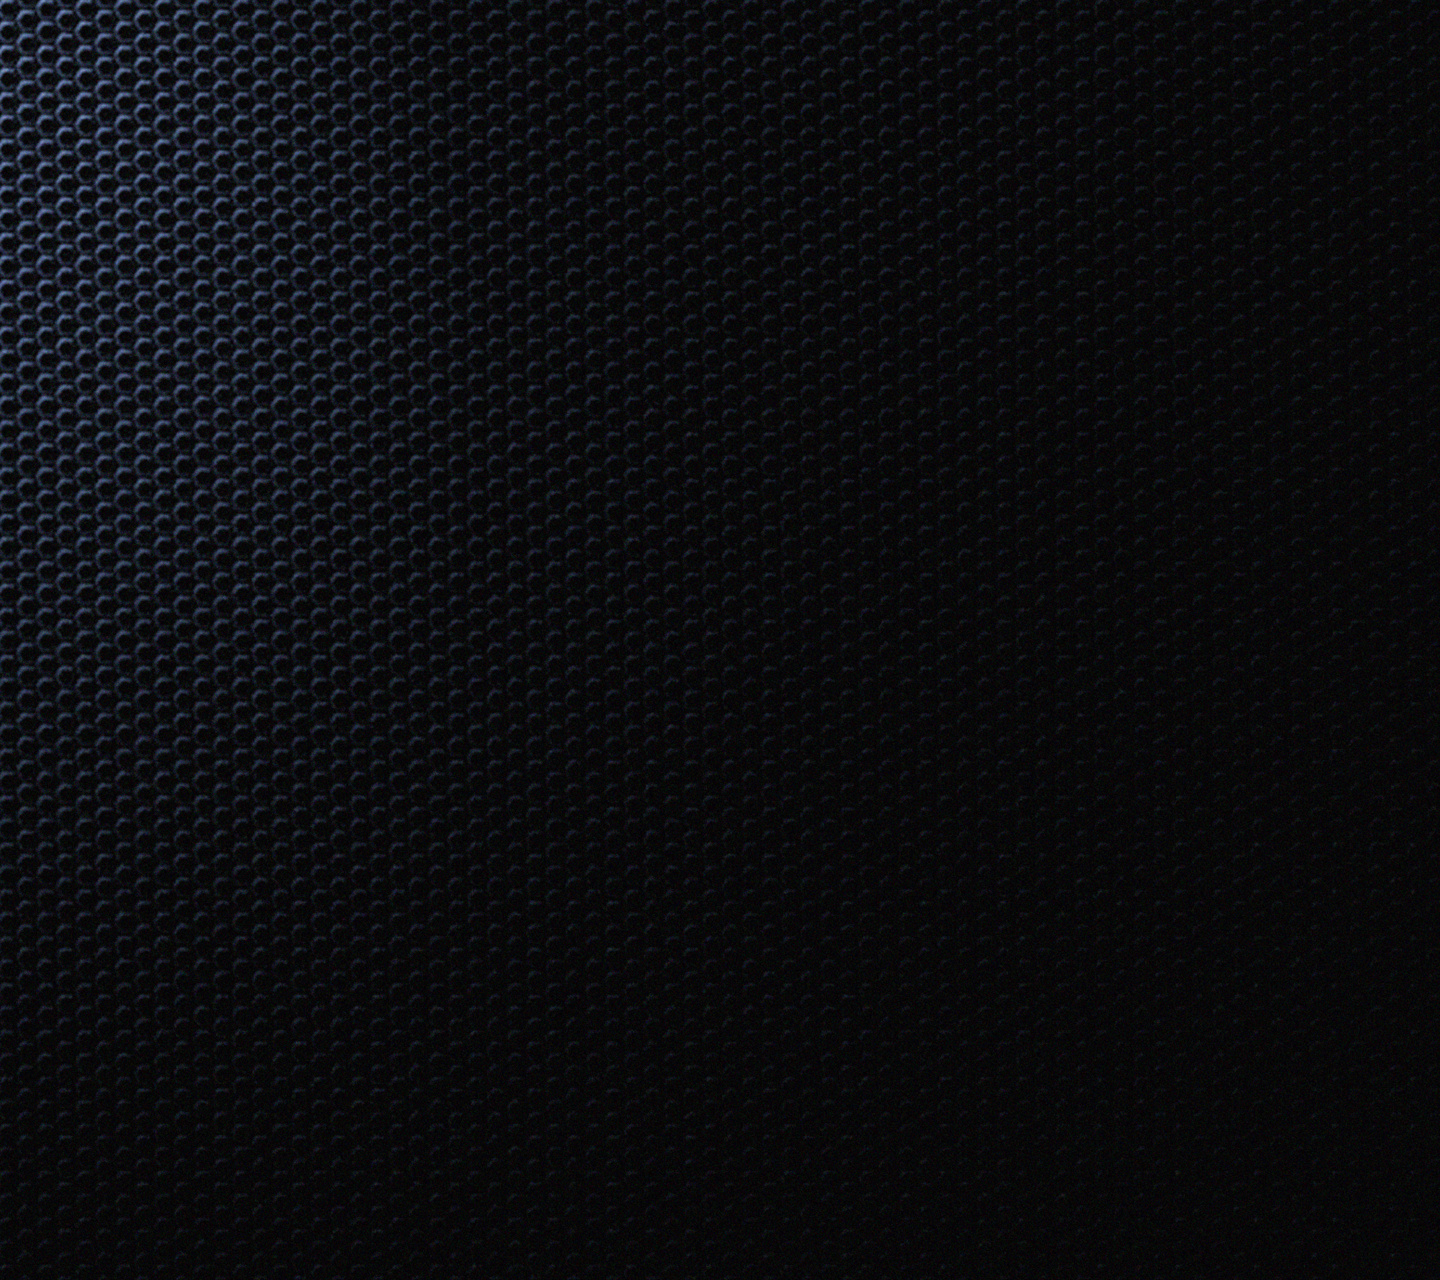 [47+] Solid Black Wallpaper For Android On WallpaperSafari